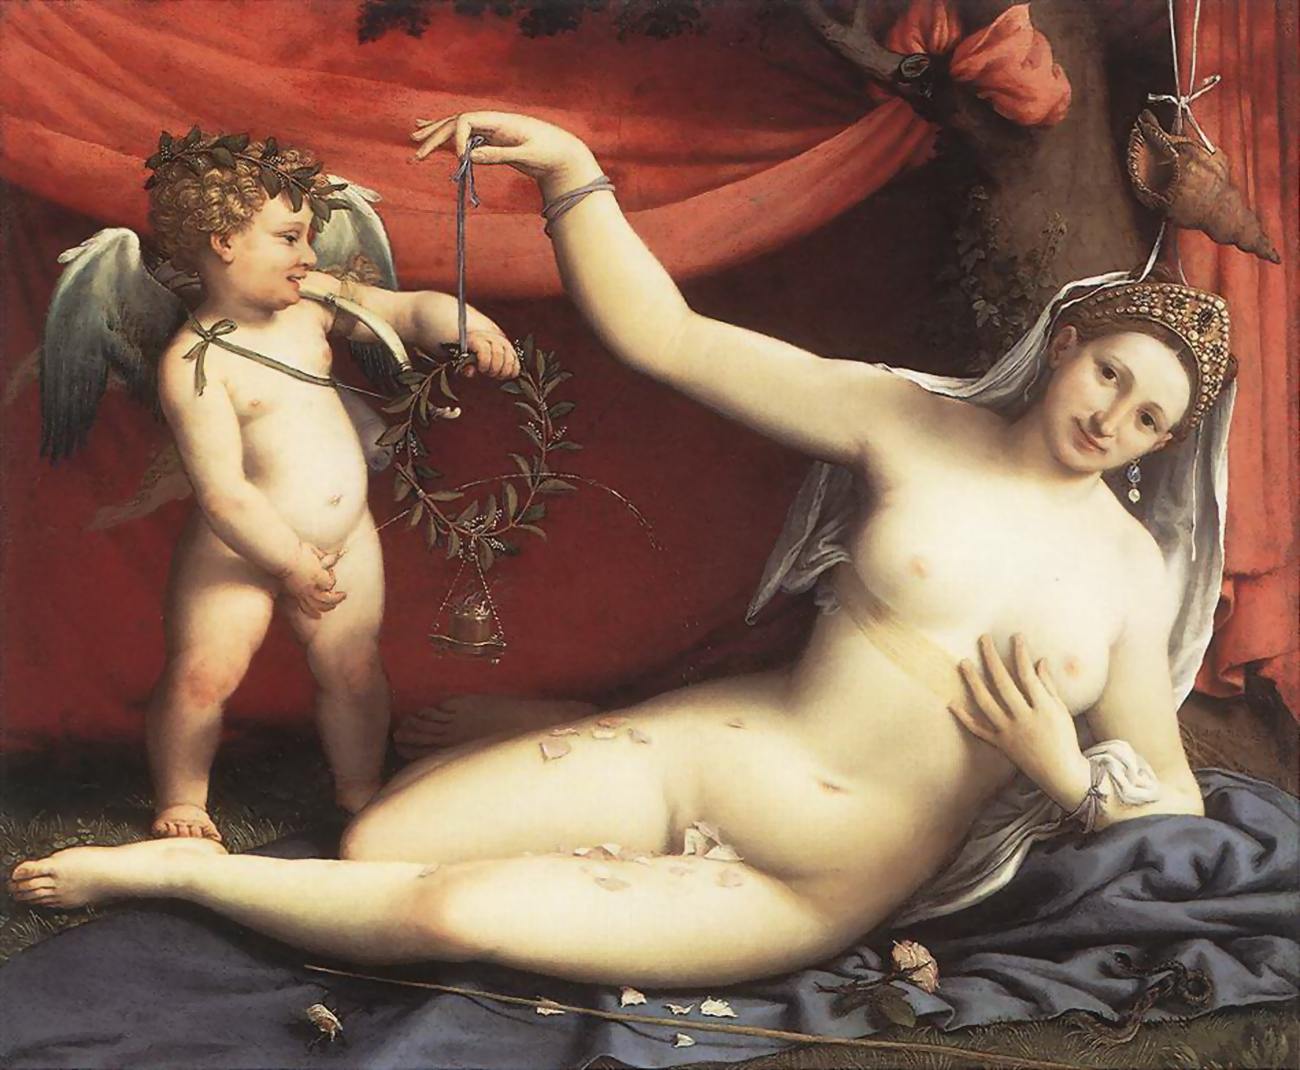 Lorenzo Lotto - Venus and Cupid.jpg